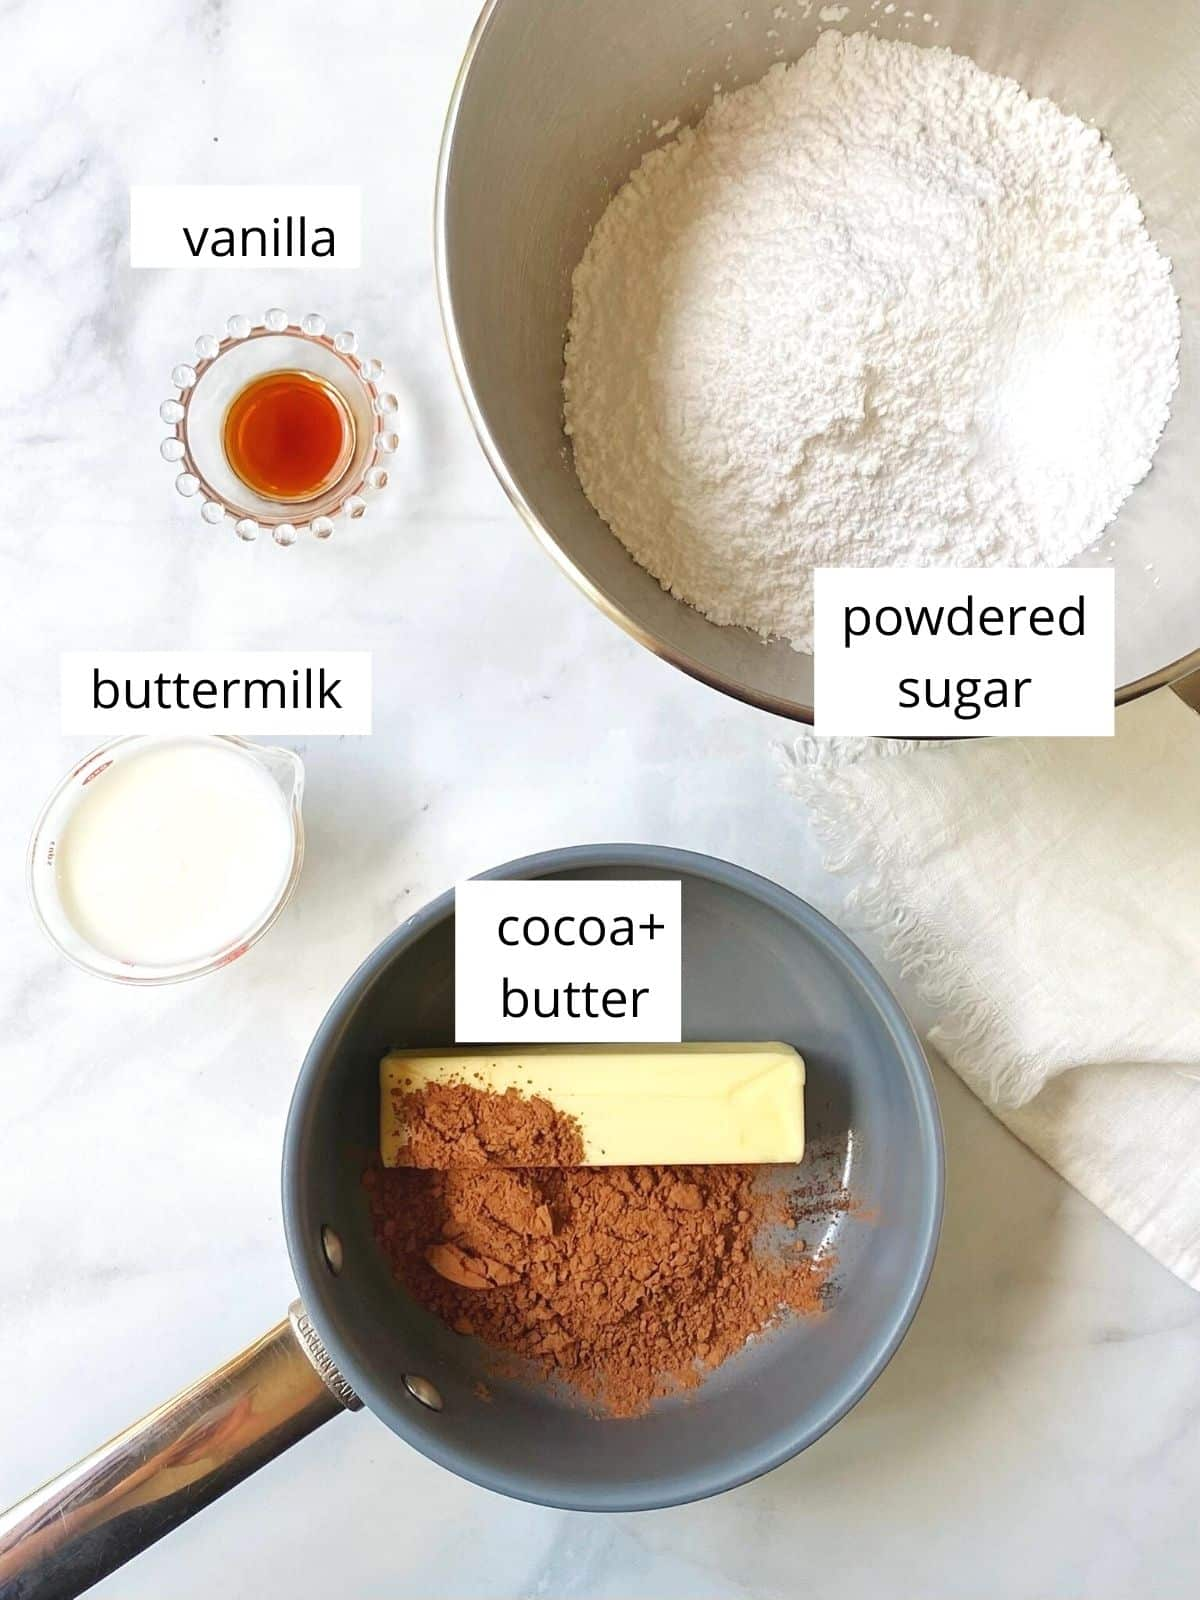 array of frosting ingredients - powdered sugar, vanilla, buttermilk, cocoa powder, and butter